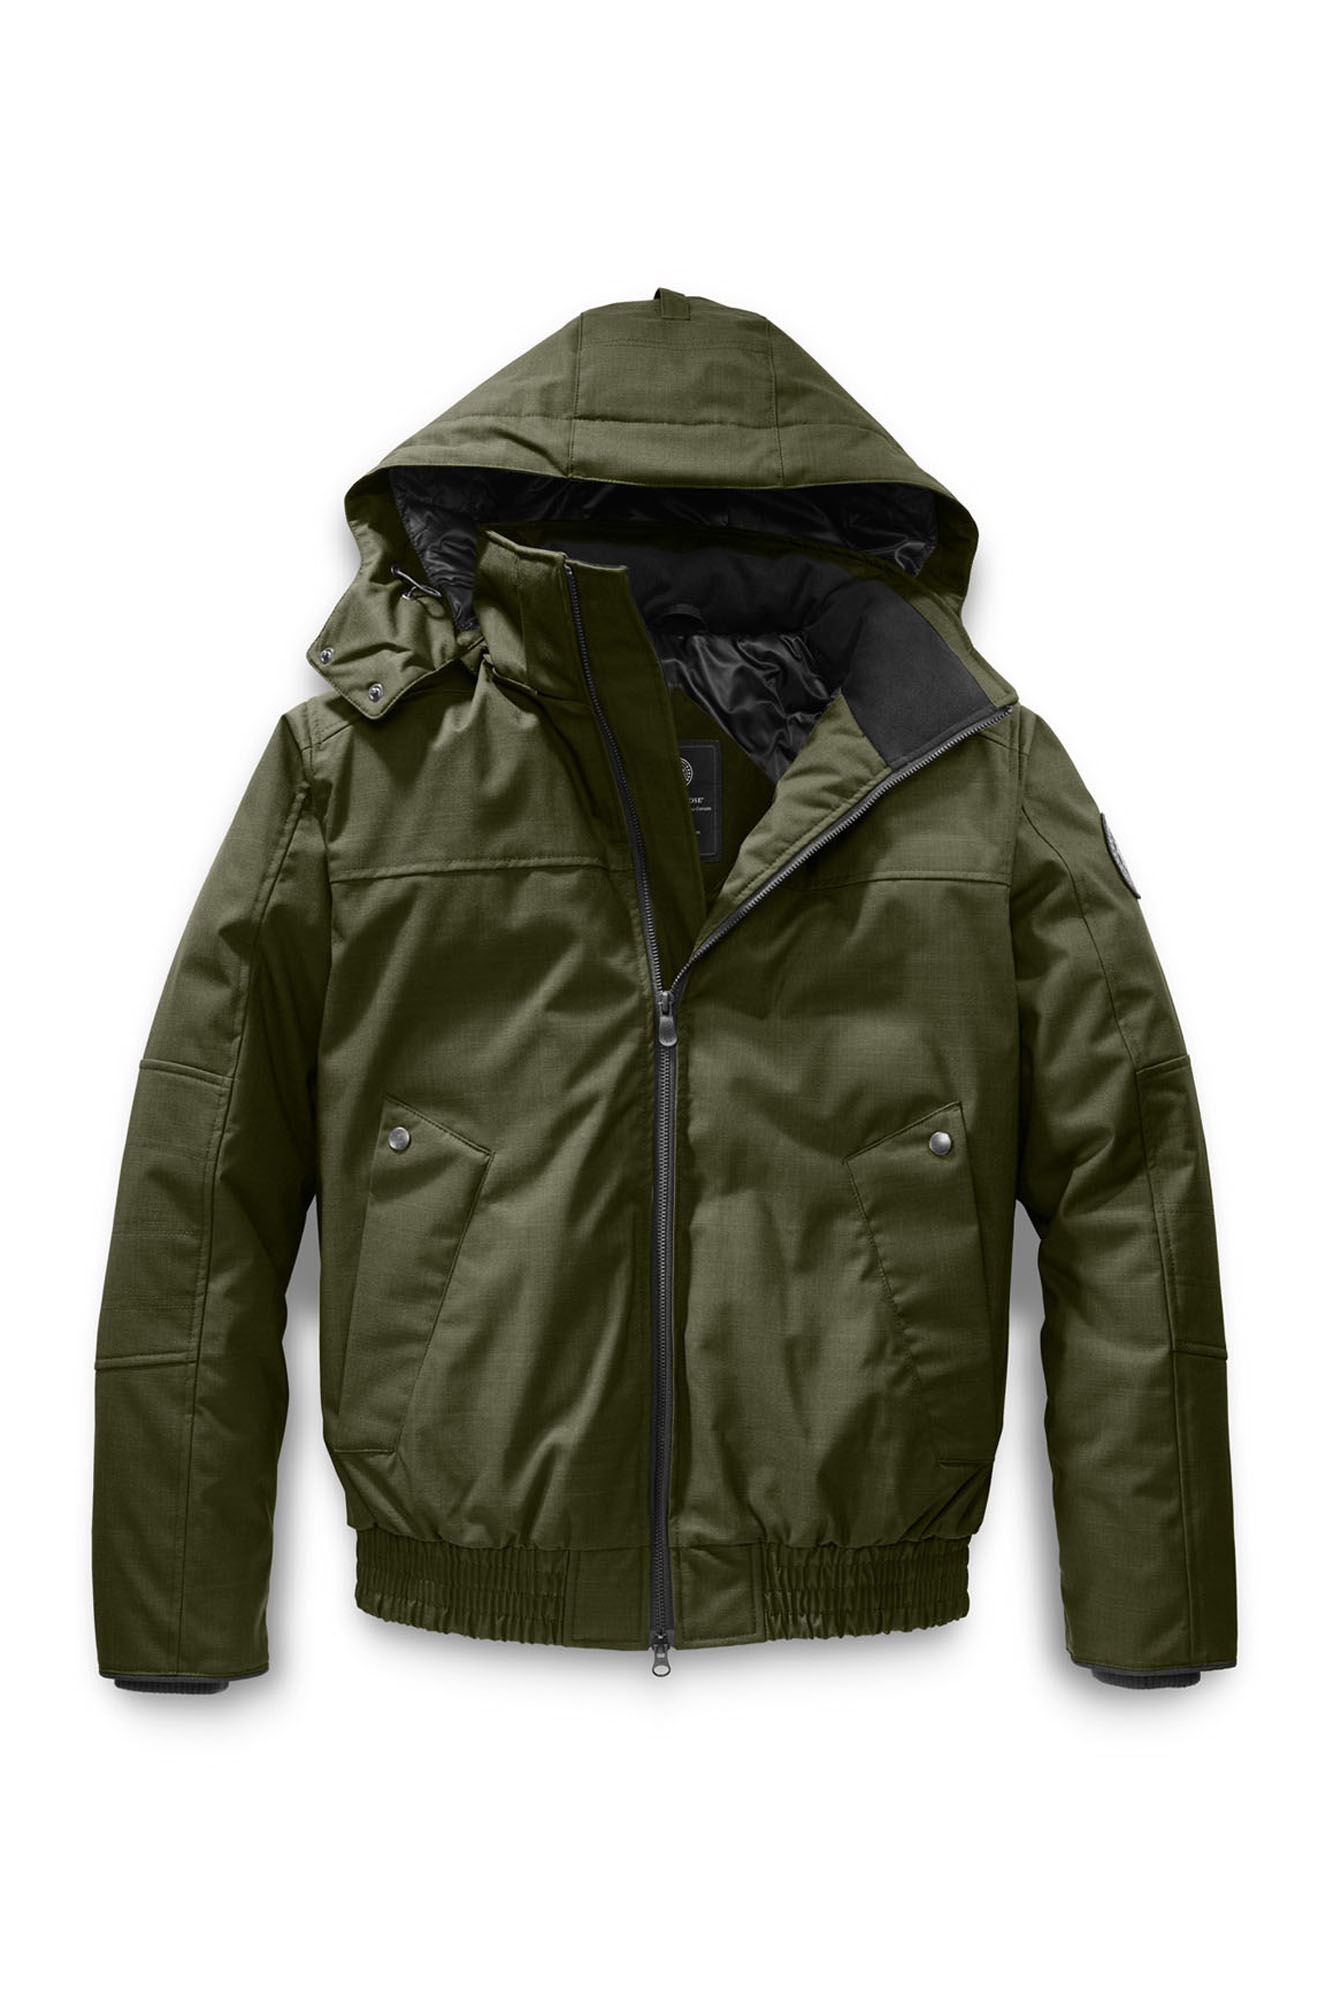 canada goose jacket dry cleaning